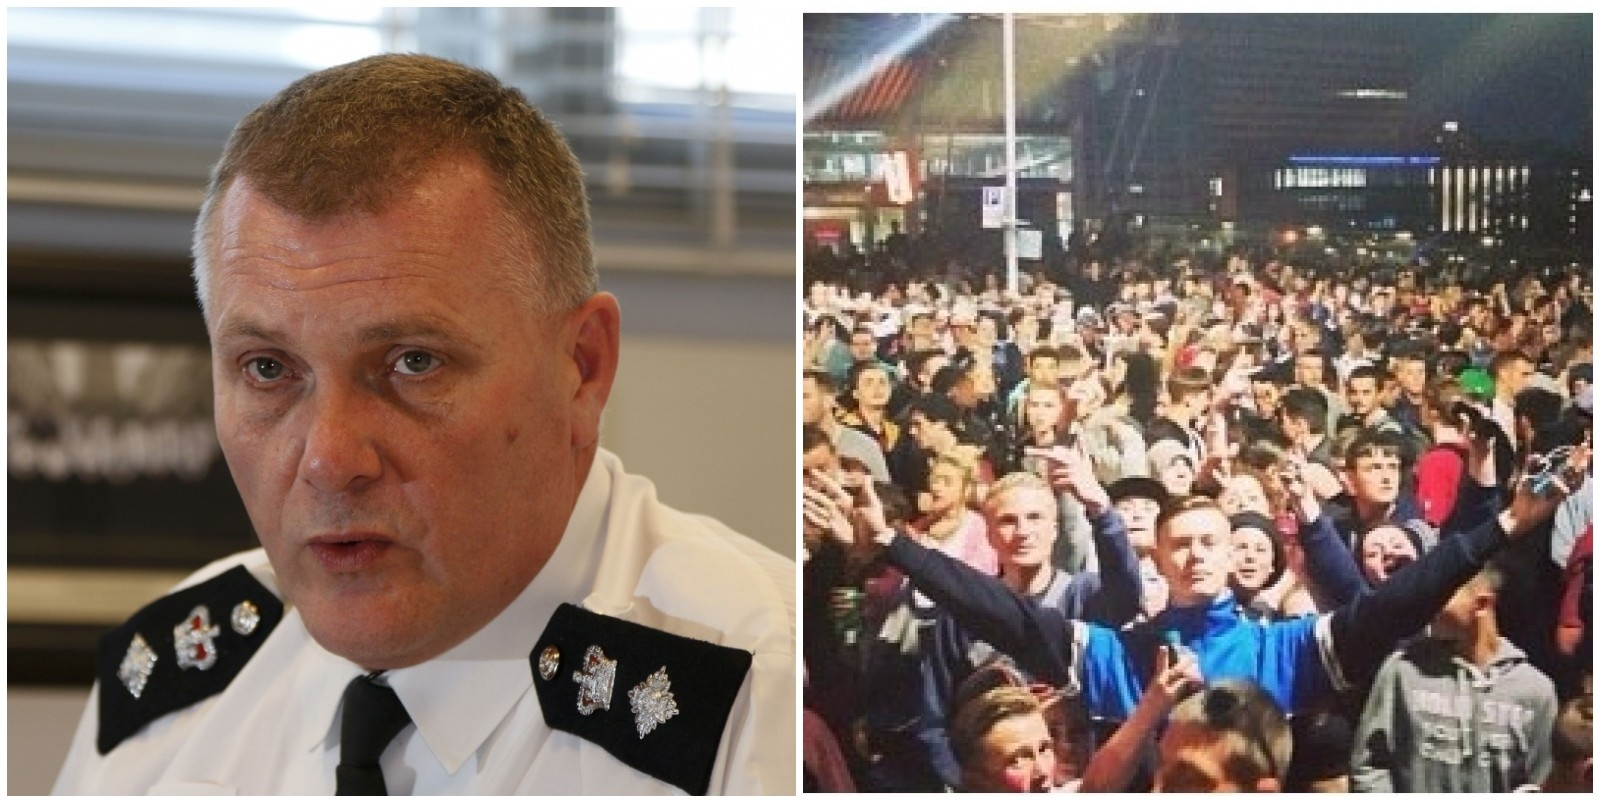 Chief Supt Dave Musker has pledged to pursue the organiser's of Saturday's rave